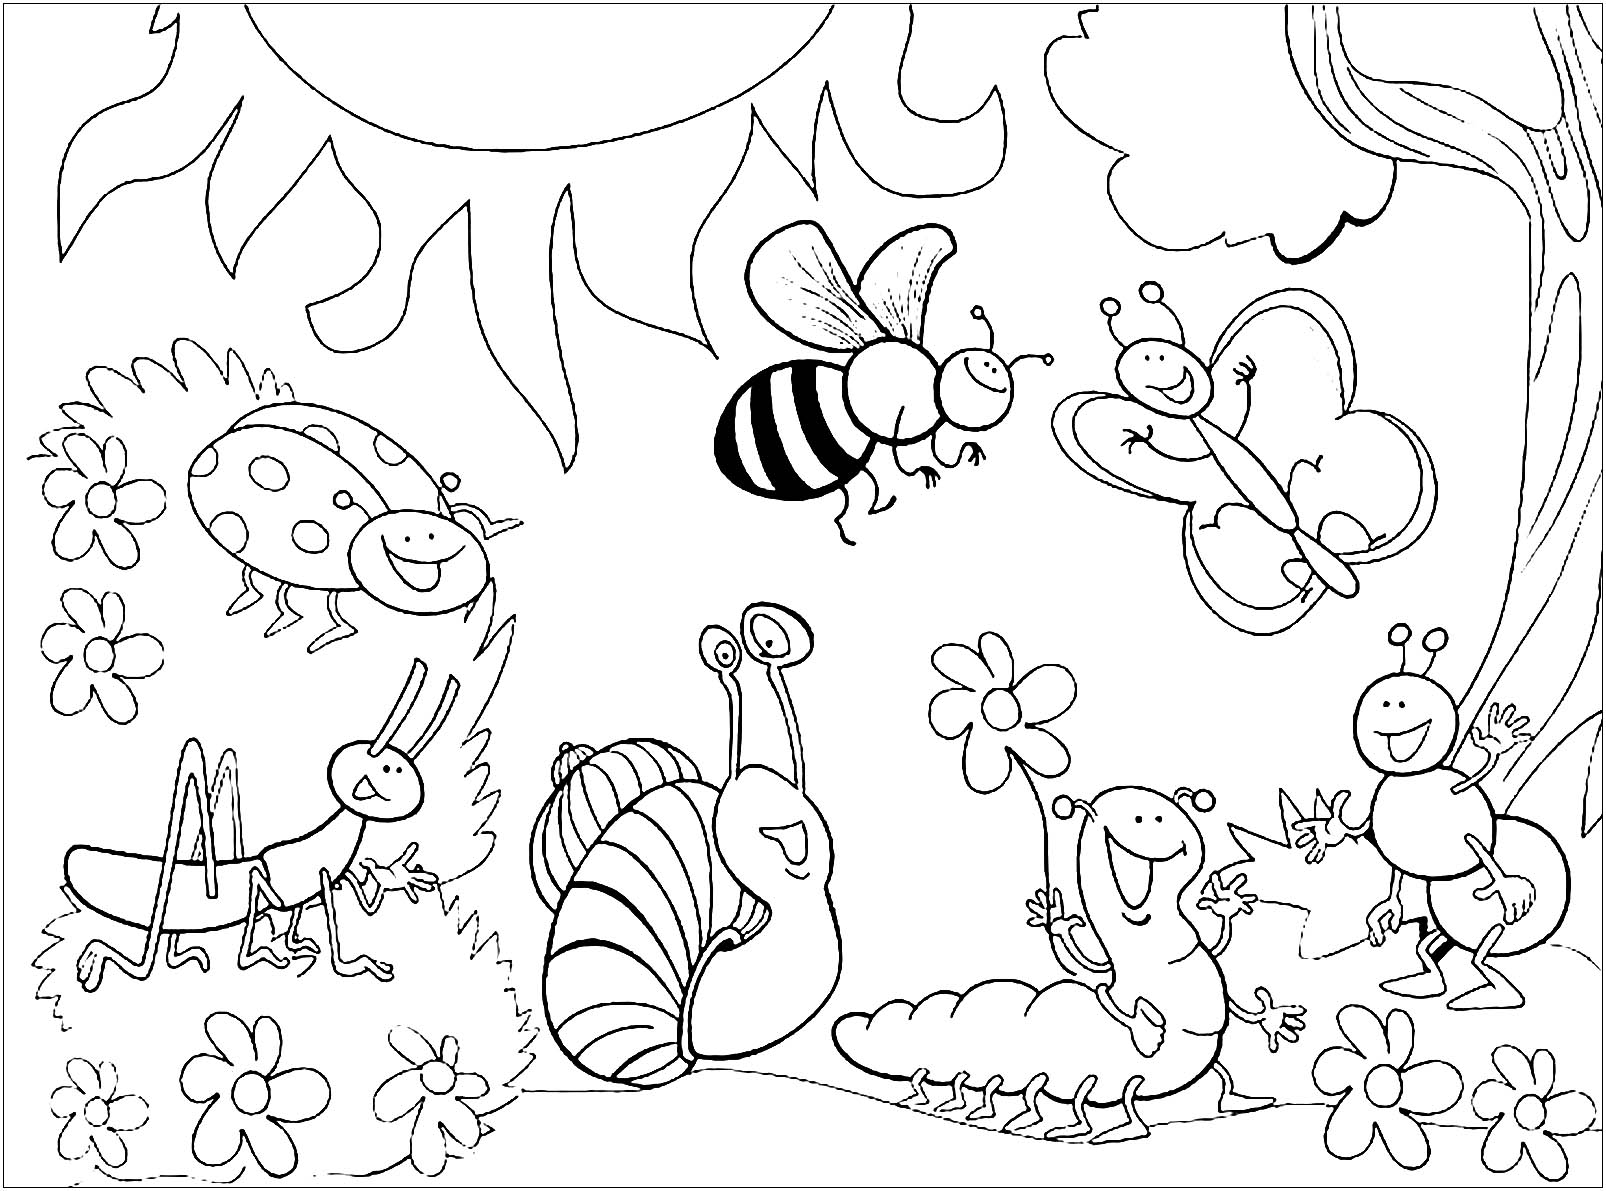 insects coloring sheets insects for children insects kids coloring pages insects coloring sheets